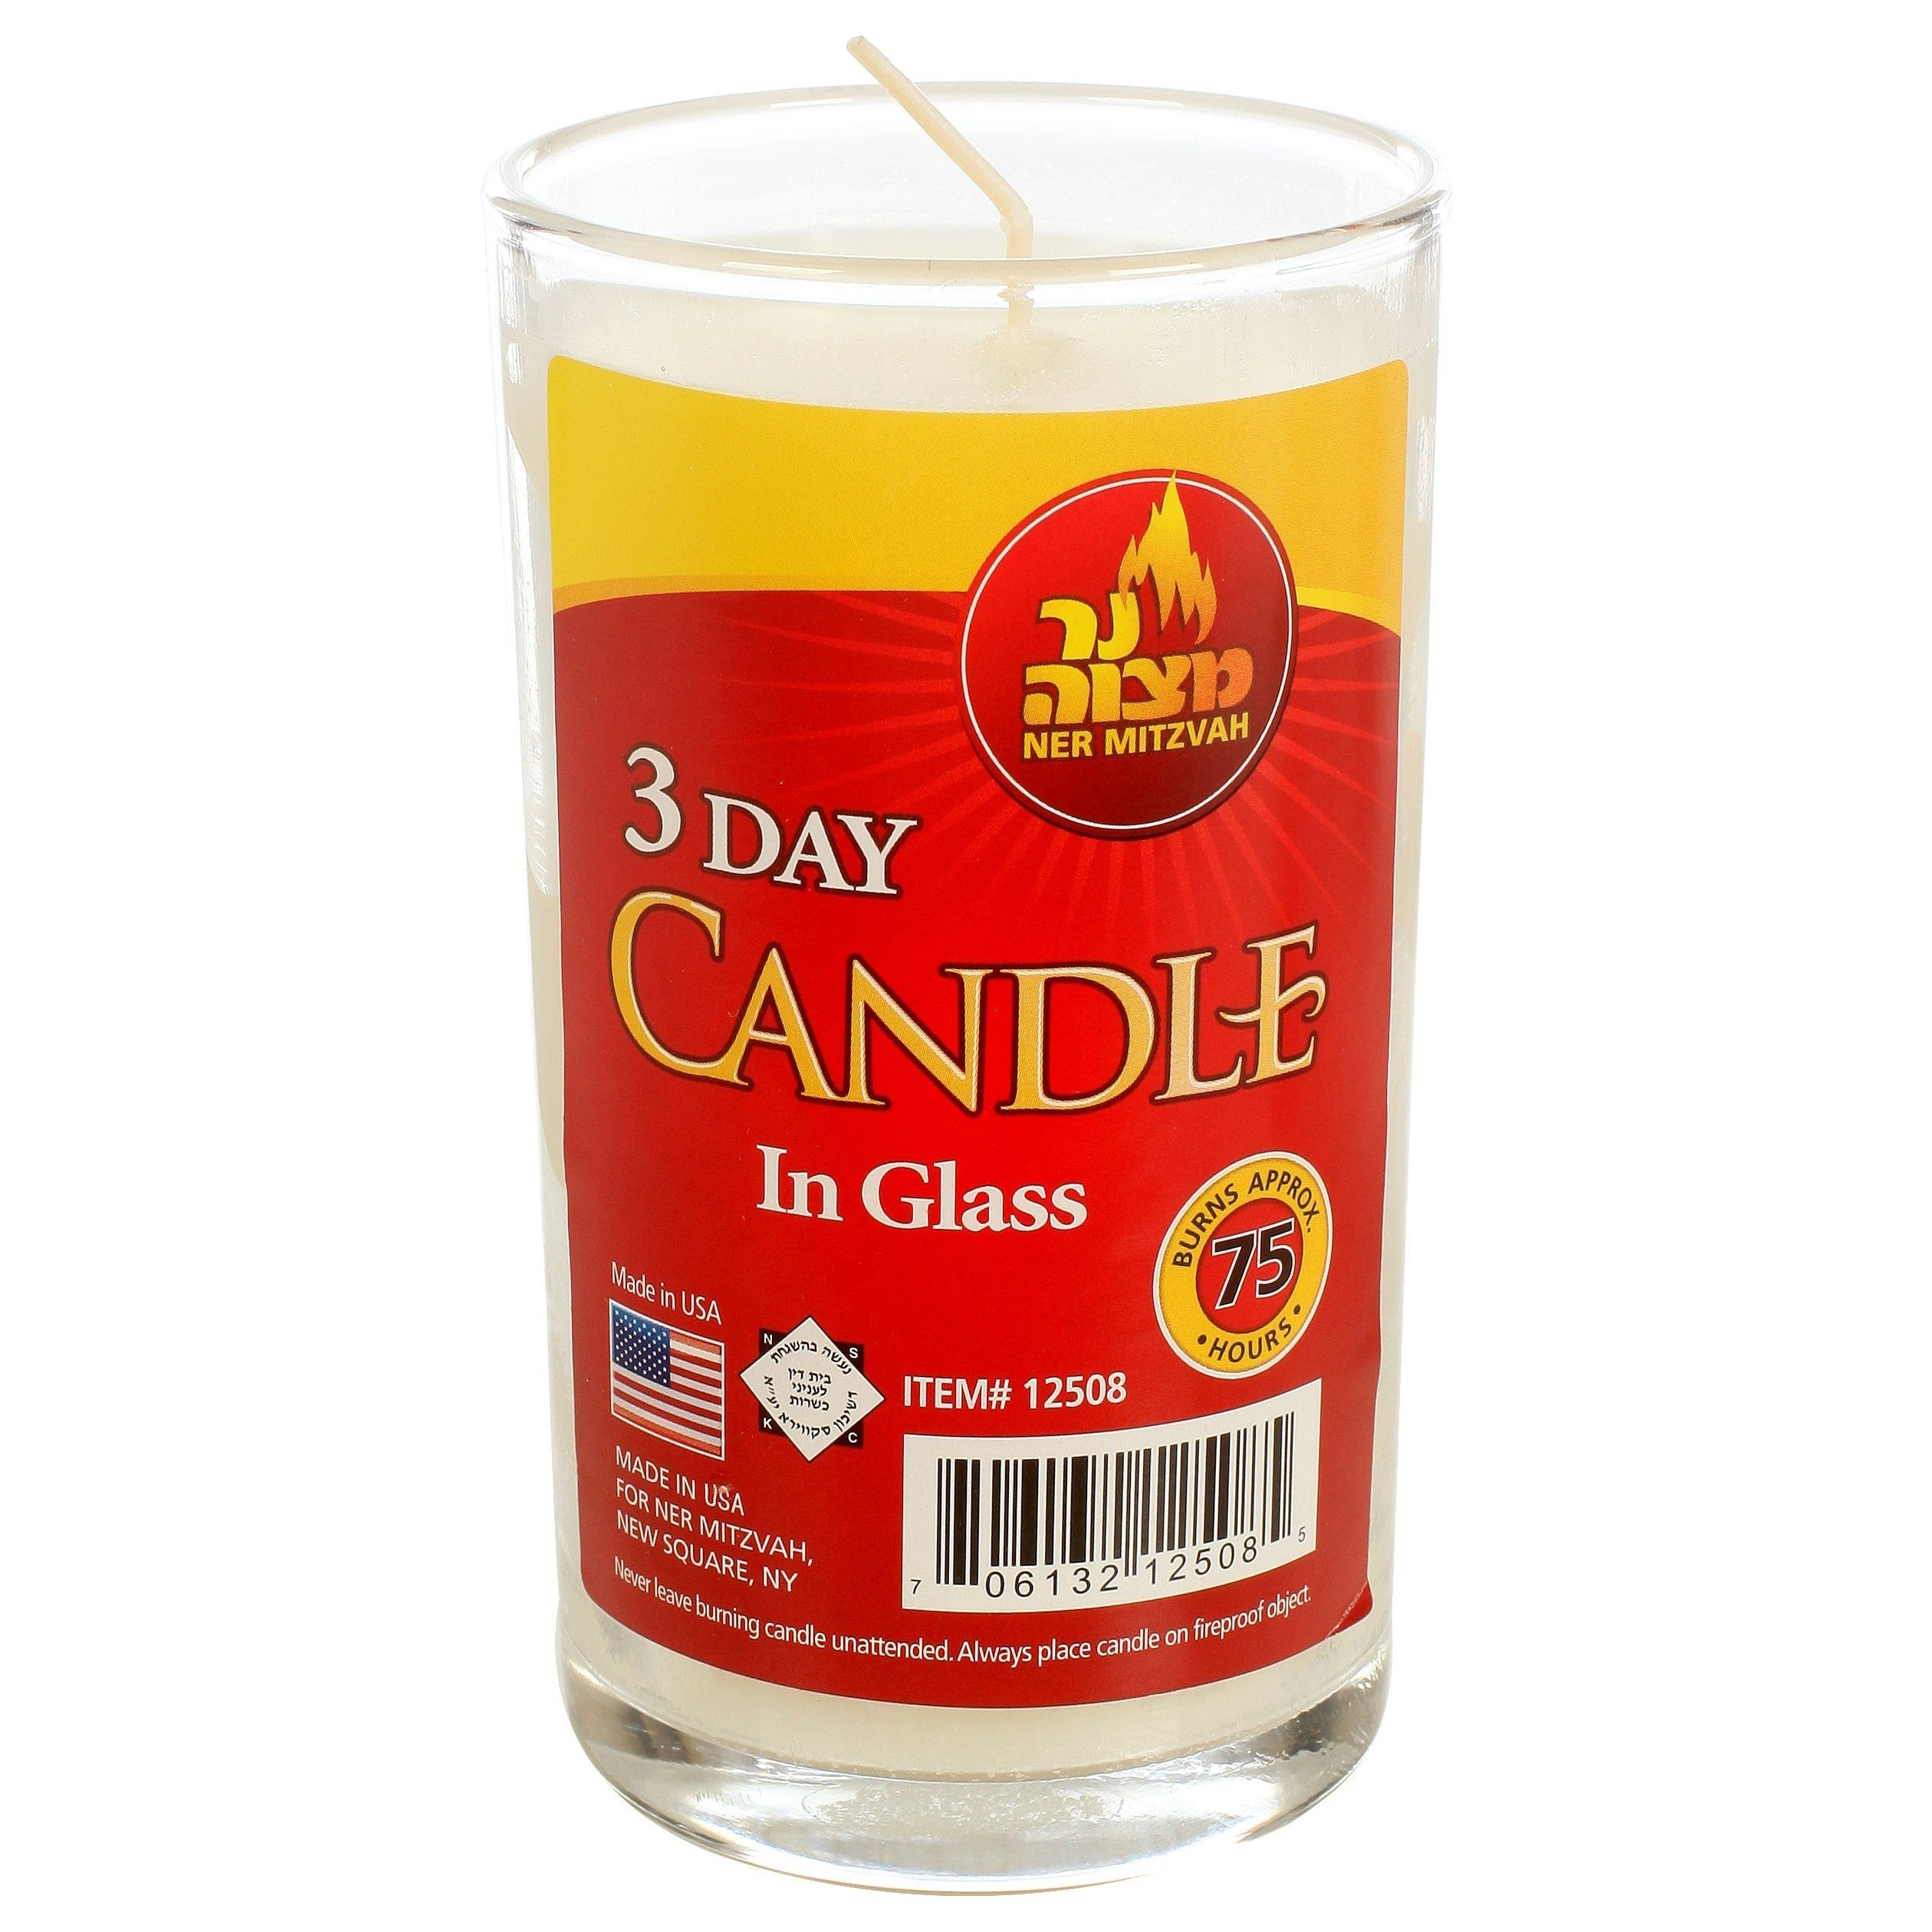 4 x Ner Mitzvah 3 Day Candle In Glass